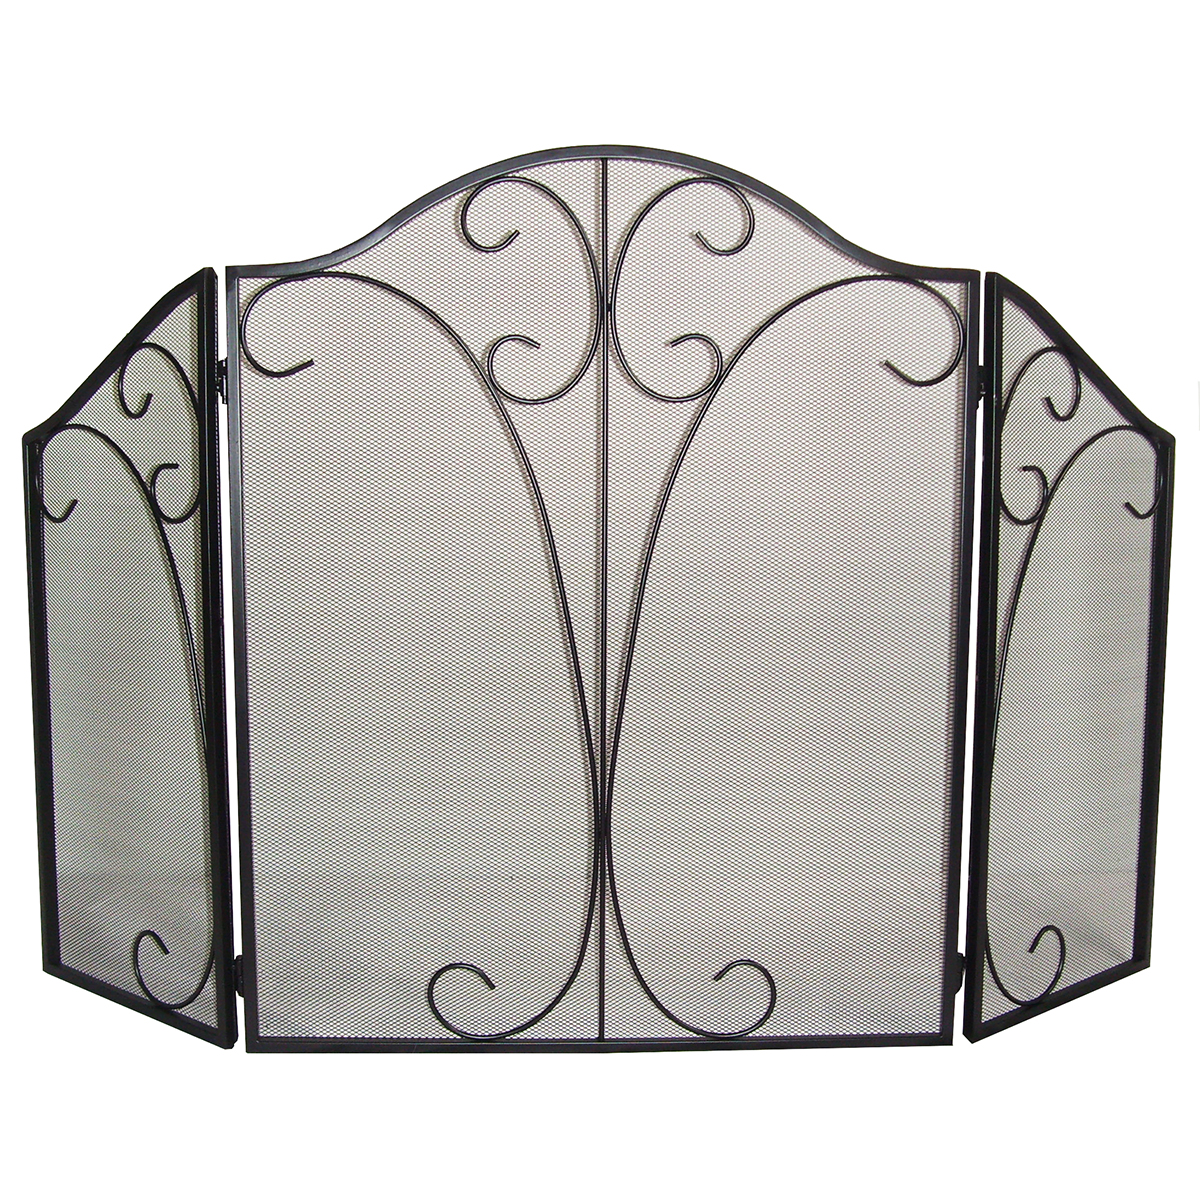 "Buy Clevr 51"" 3-Panel Arch Fireplace Safety Fence Screen Metal Vintage Gate Divider Guard at Walmart.com"